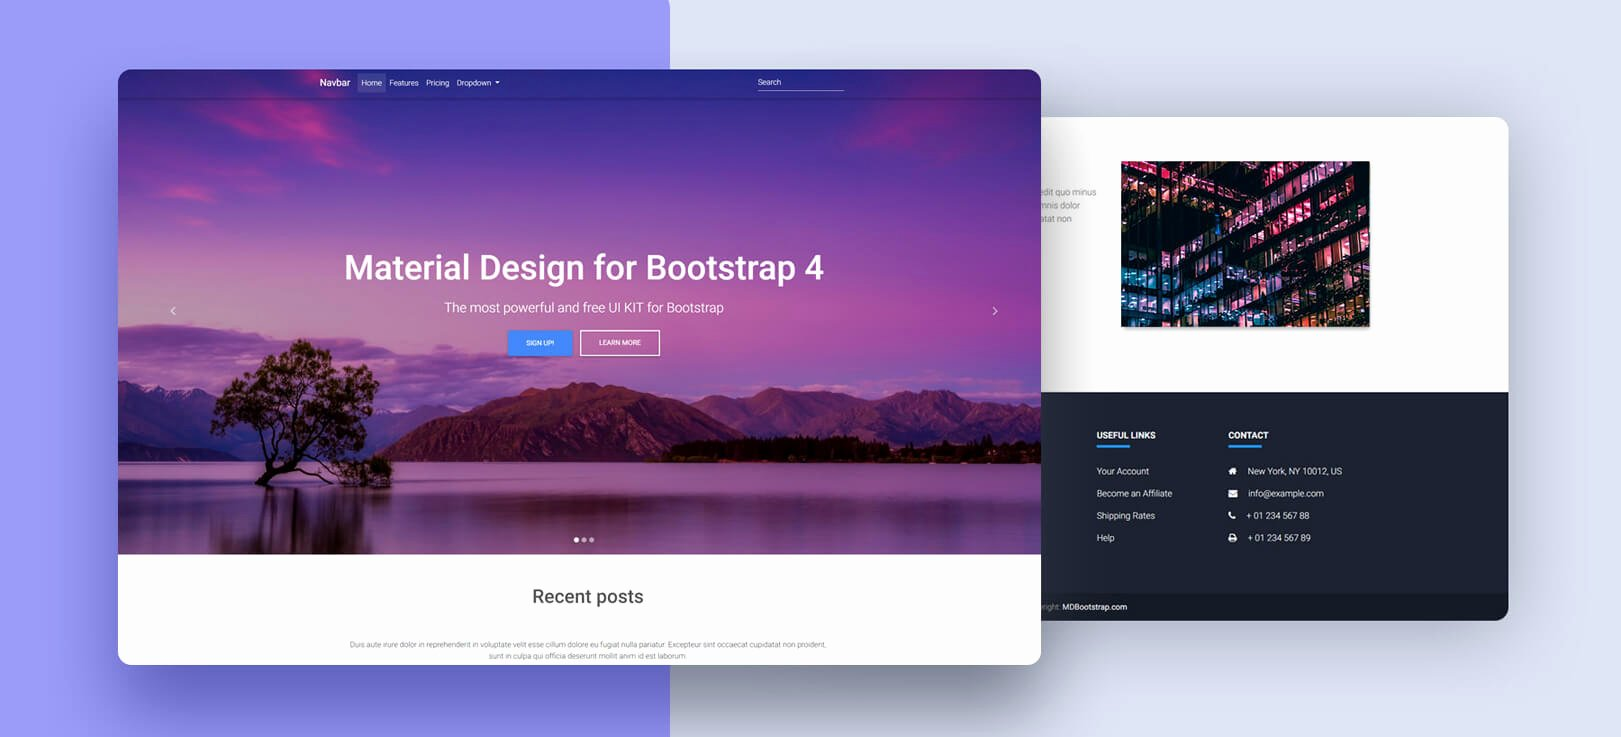 Full Page Star Template Fresh Full Page Image Carousel Material Design for Bootstrap